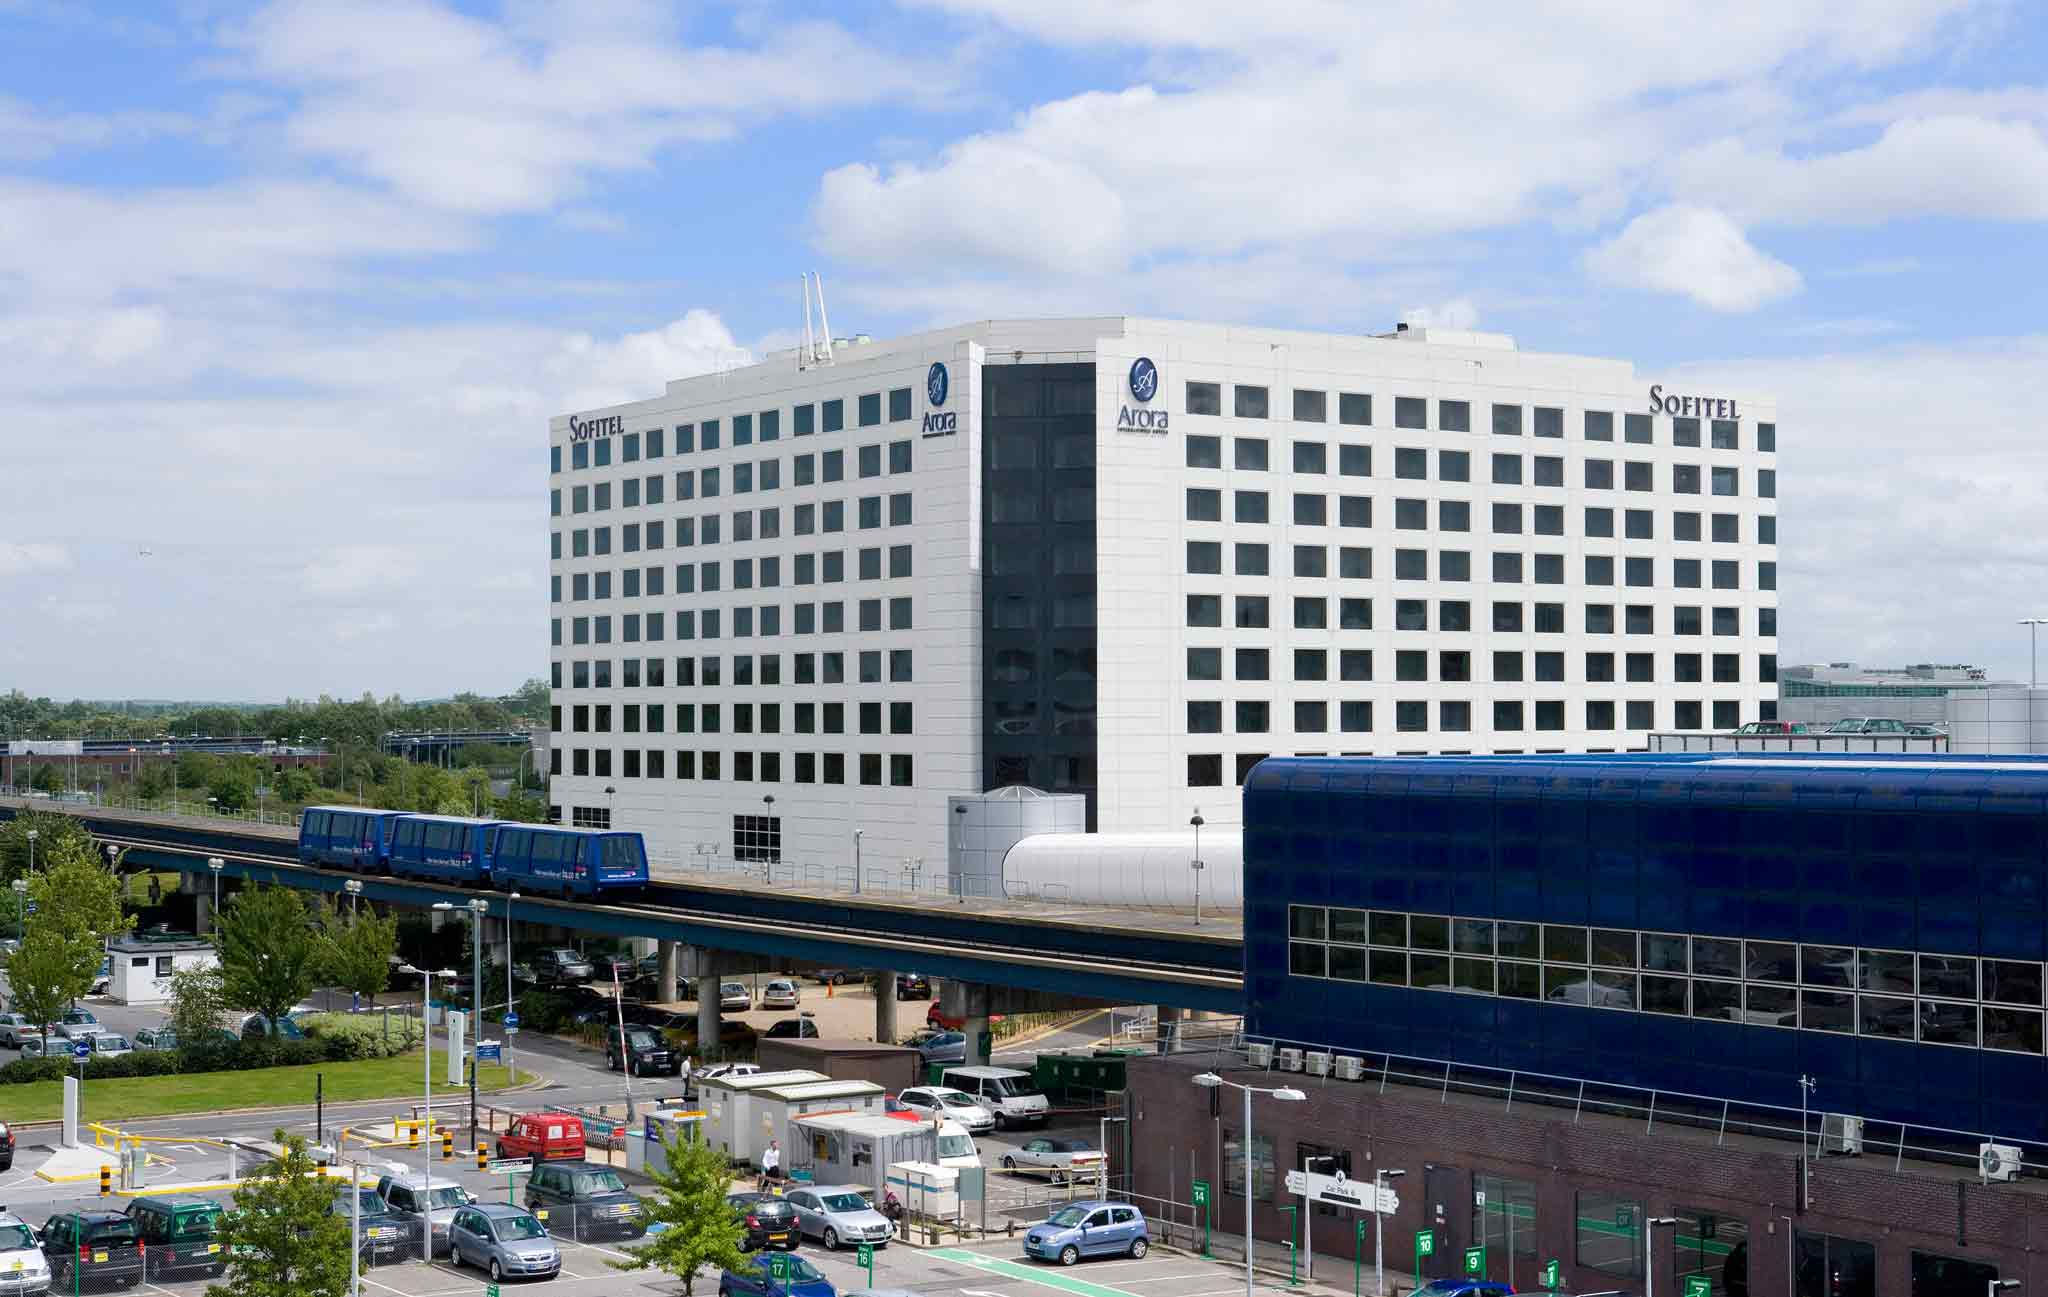 Sofitel London Gatwick Vista exterior